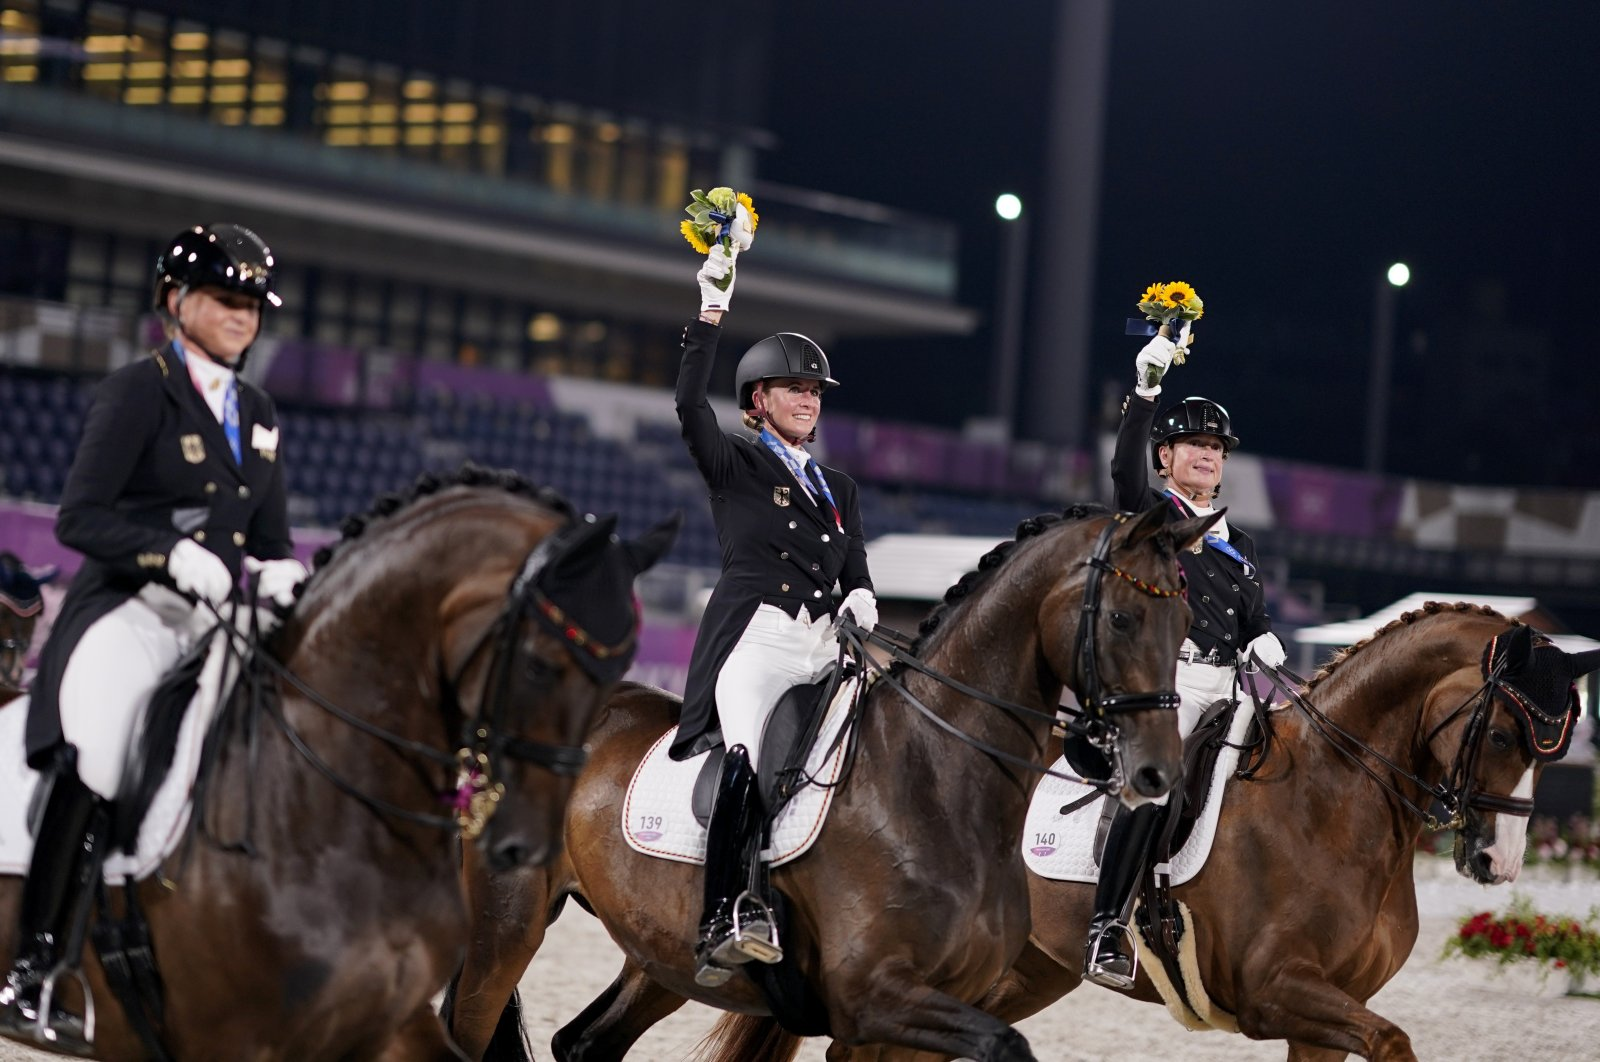 Germany's Dorothee Schneider, from left, Jessica von Bredow-Werndl and Isabell Werth take a victory lap after receiving the gold medal for the equestrian dressage team event at the 2020 Summer Olympics, Tuesday, July 27, 2021, in Tokyo. (AP Photo/David Goldman)